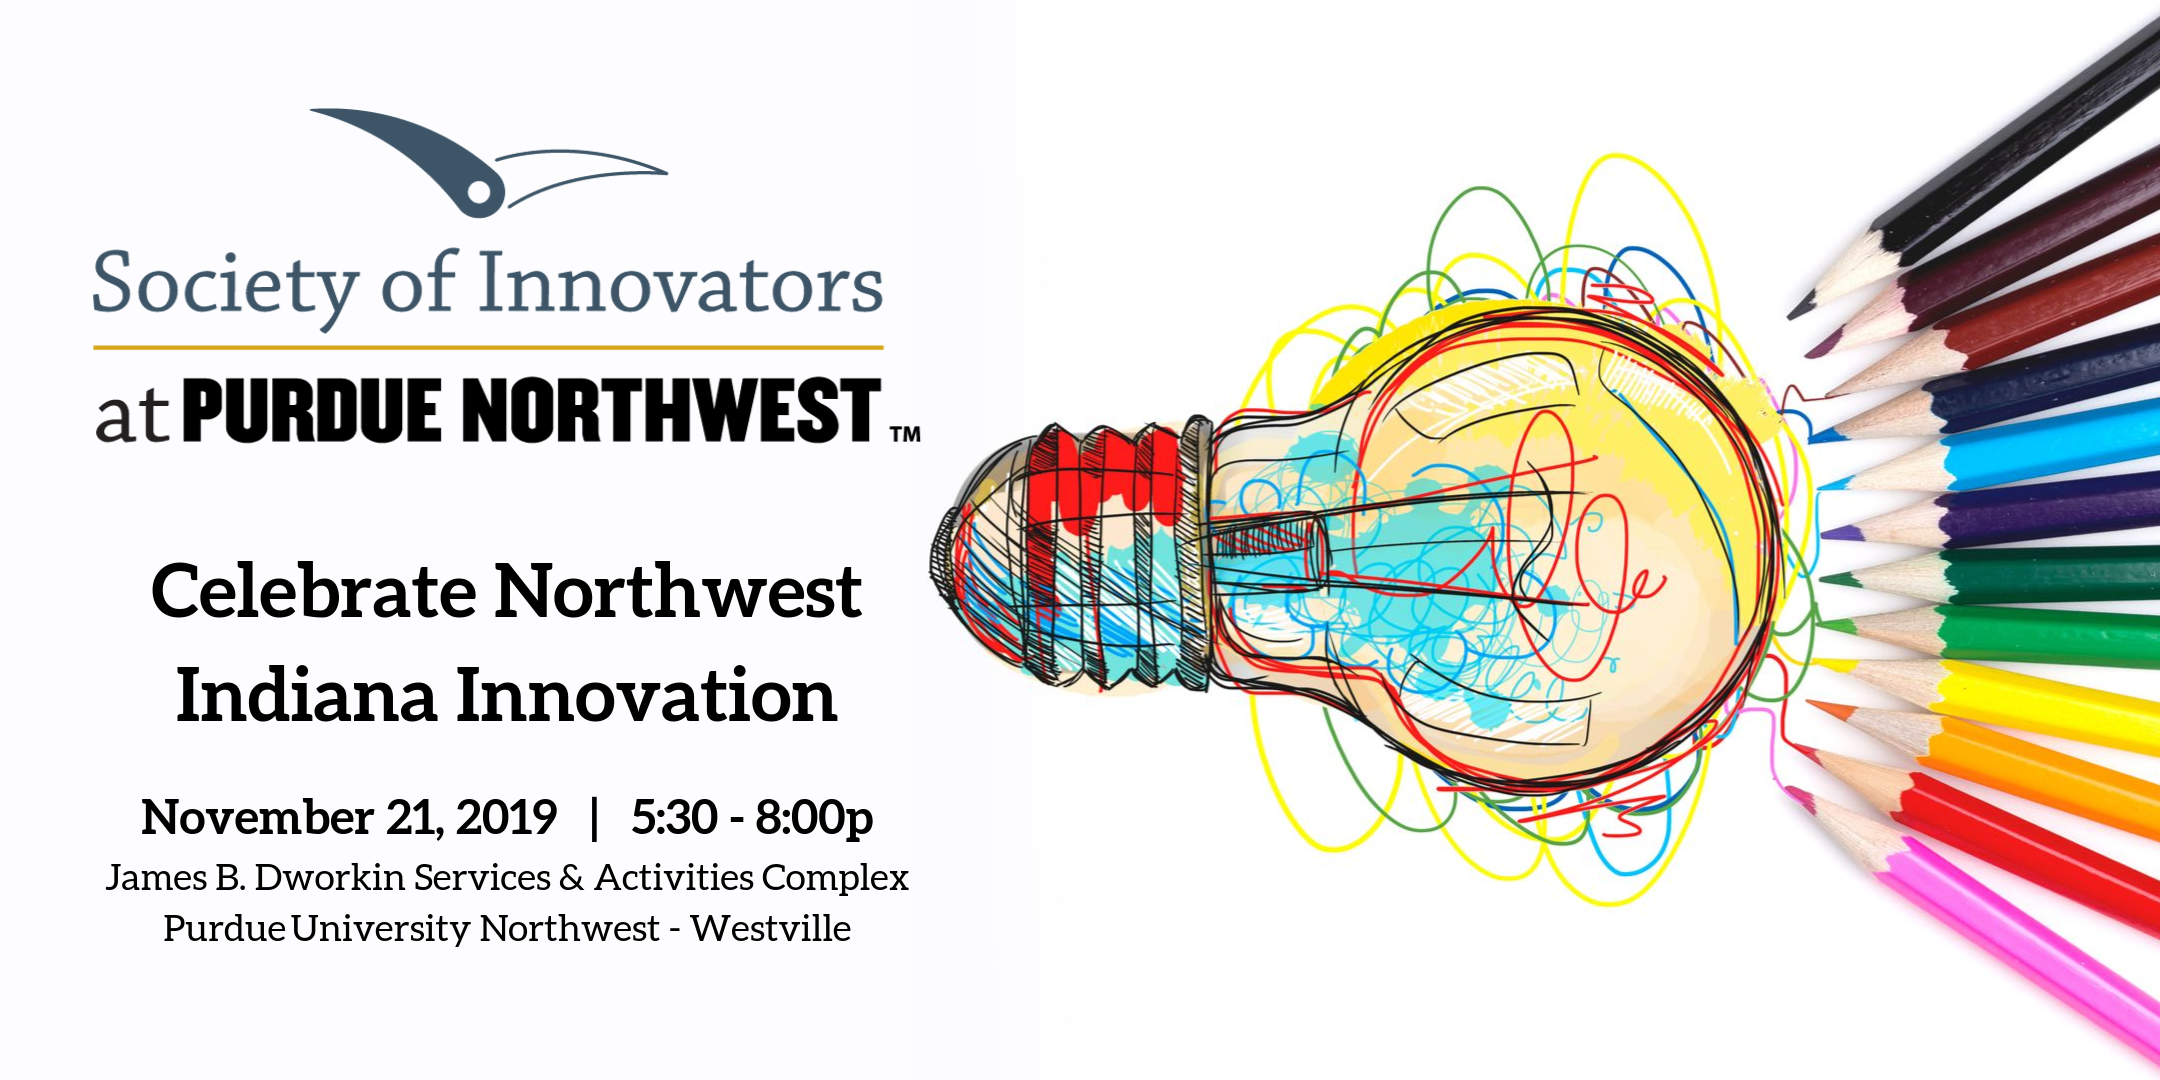 Society of Innovators Annual Event